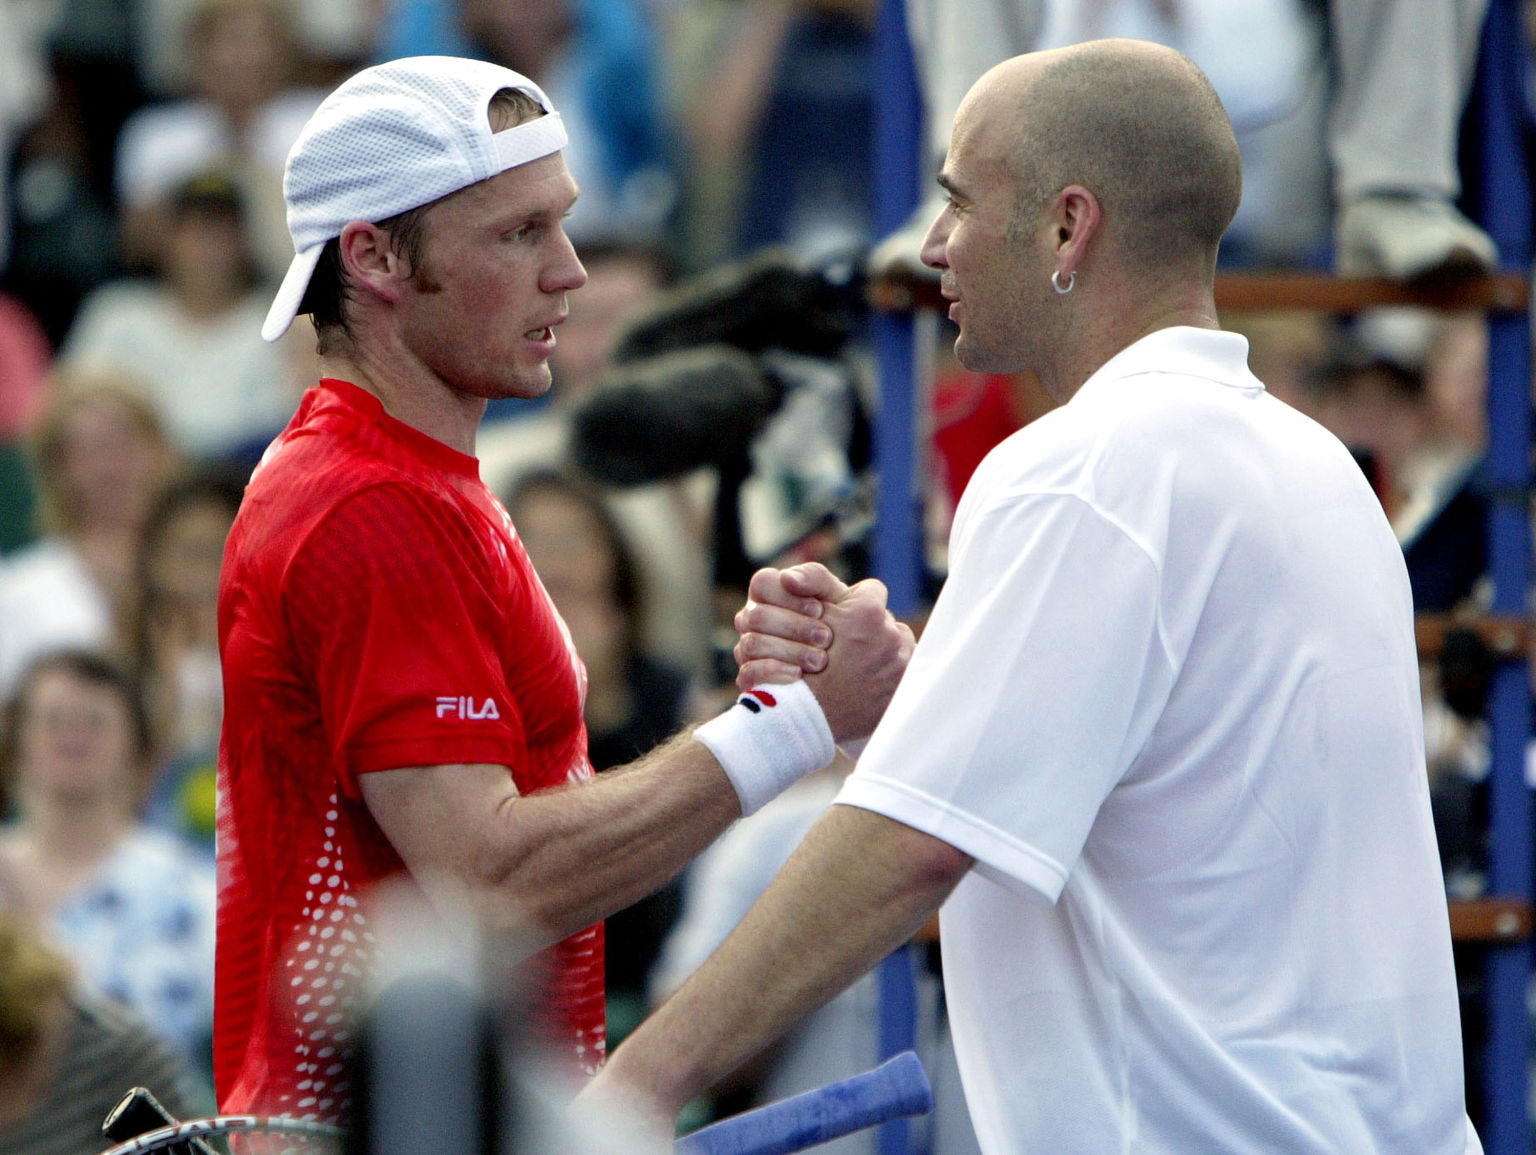 HOUSTON - NOVEMBER 15:  Rainer Schuettler of Germany congratulates Andre Agassi after their match during the Tennis Masters Cup November 15, 2003 at the Westside Tennis Club in Houston, Texas.  (Photo by Clive Brunskill/Getty Images)